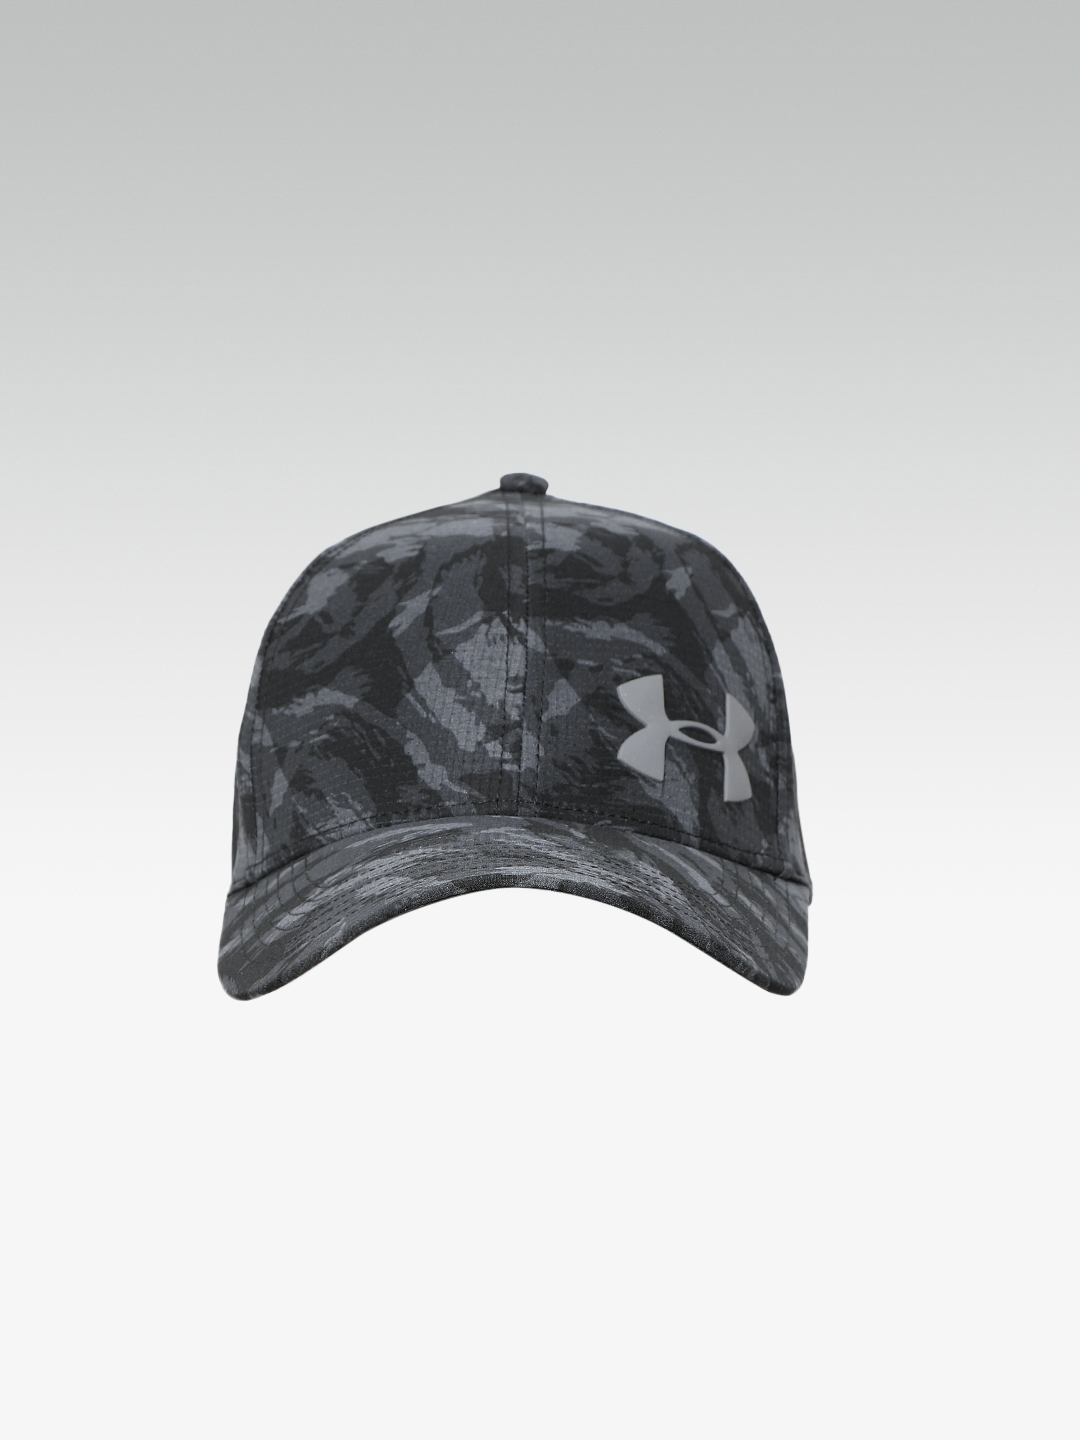 UNDER ARMOUR Men Black   Grey Camouflage Printed Launch ArmourVent Cap 45ce880837c7